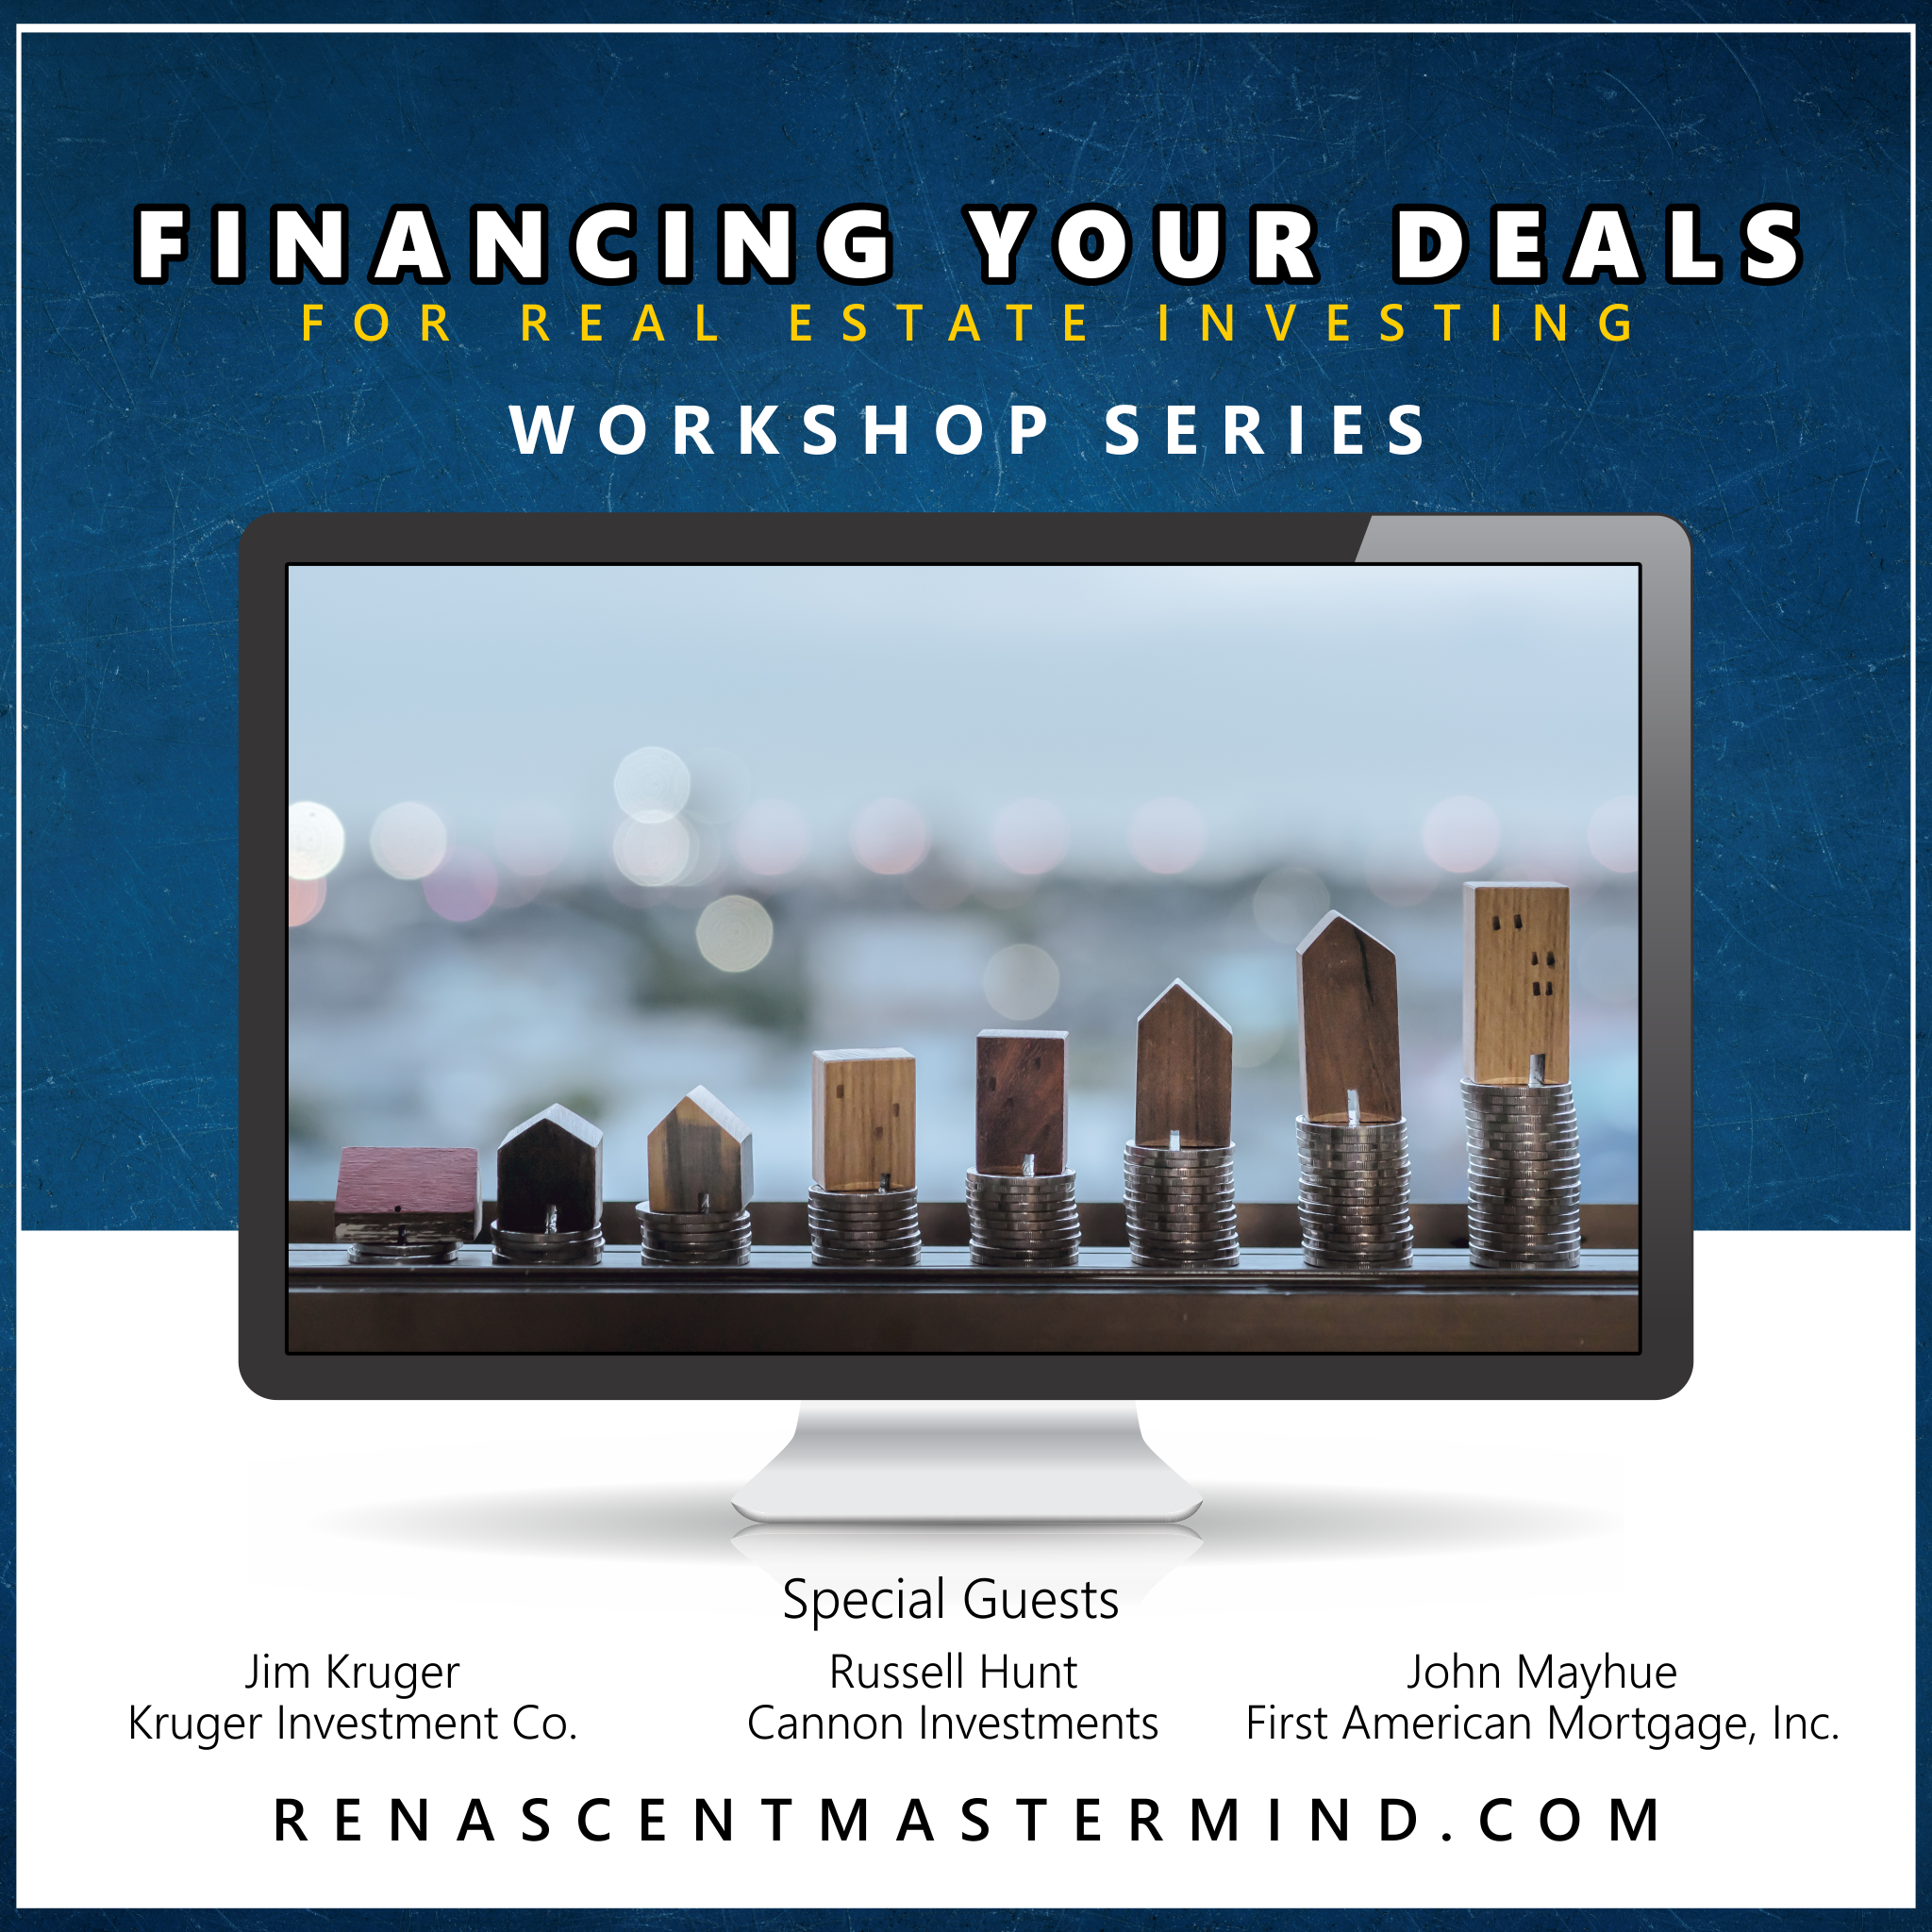 Copy of Financing Your Deals | Workshop Series with Renascent Mastermind